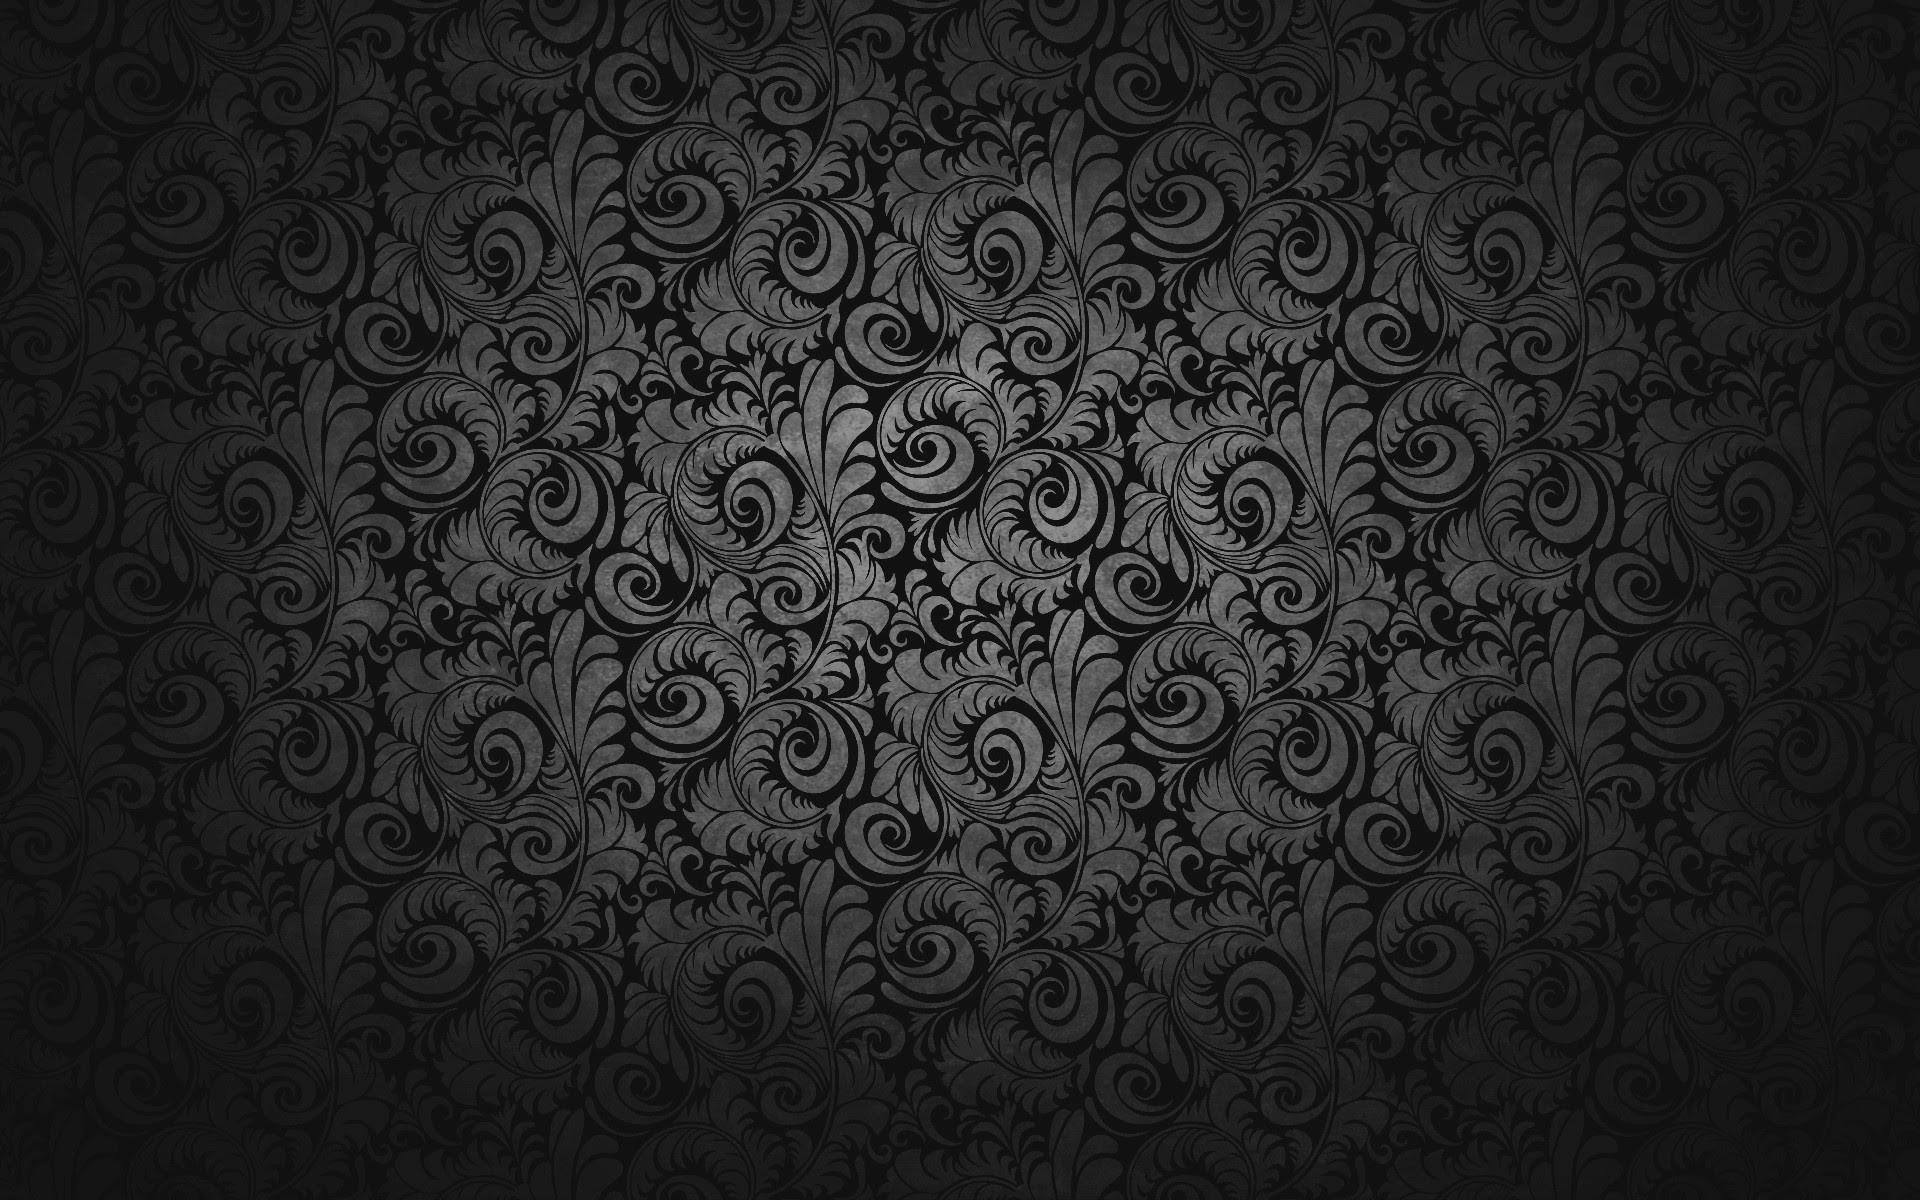 Unduh Kumpulan Wallpaper Hd Black White HD